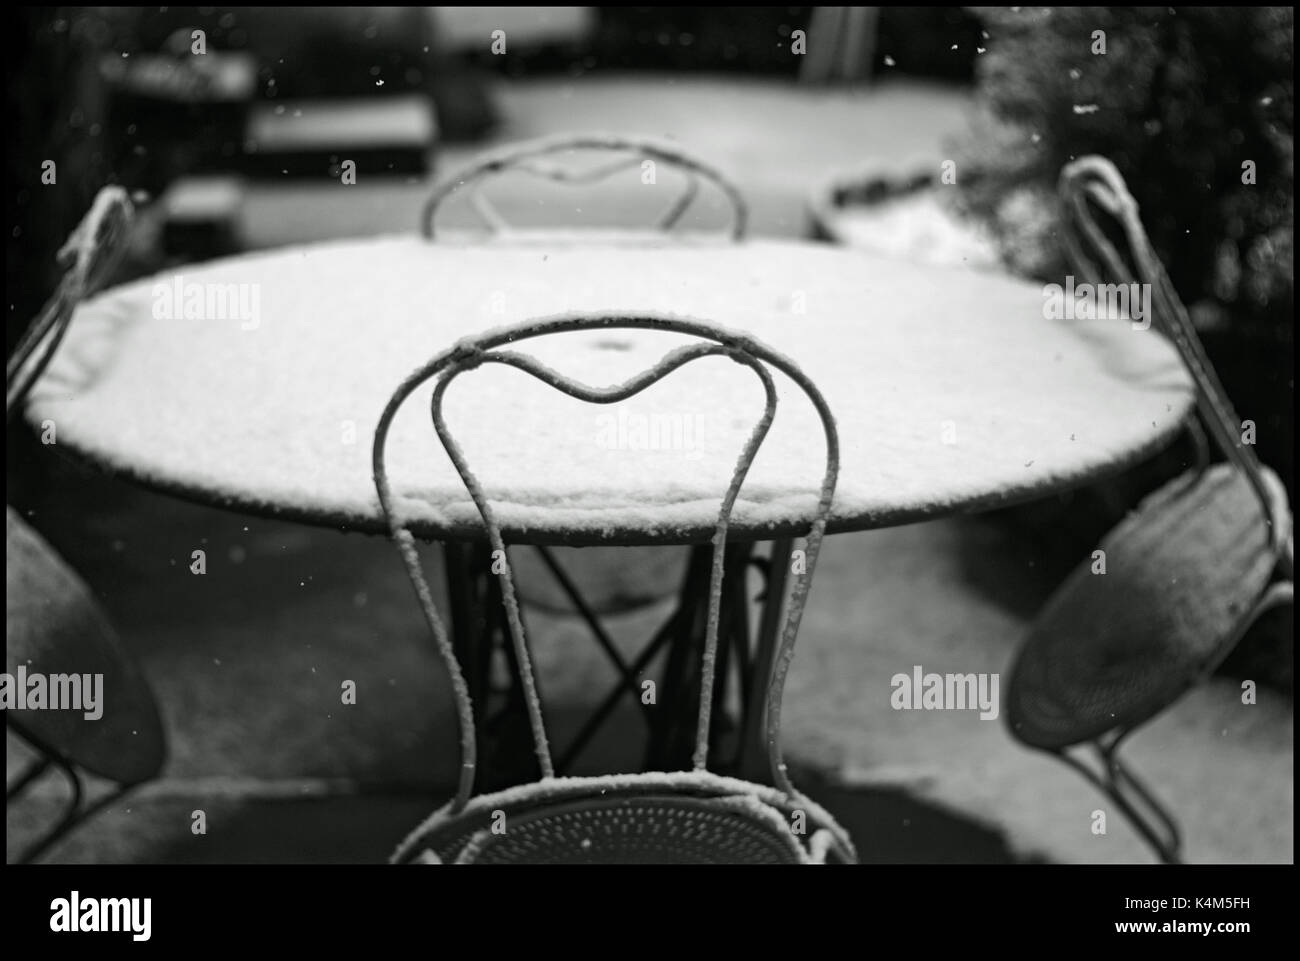 SNOW FALL - WINTER - WINTER SEASON - EMPTY TABLE - SNOW FLAKES - FIRST SNOW FLAKES - FRANCE © Frédéric BEAUMONT - Stock Image